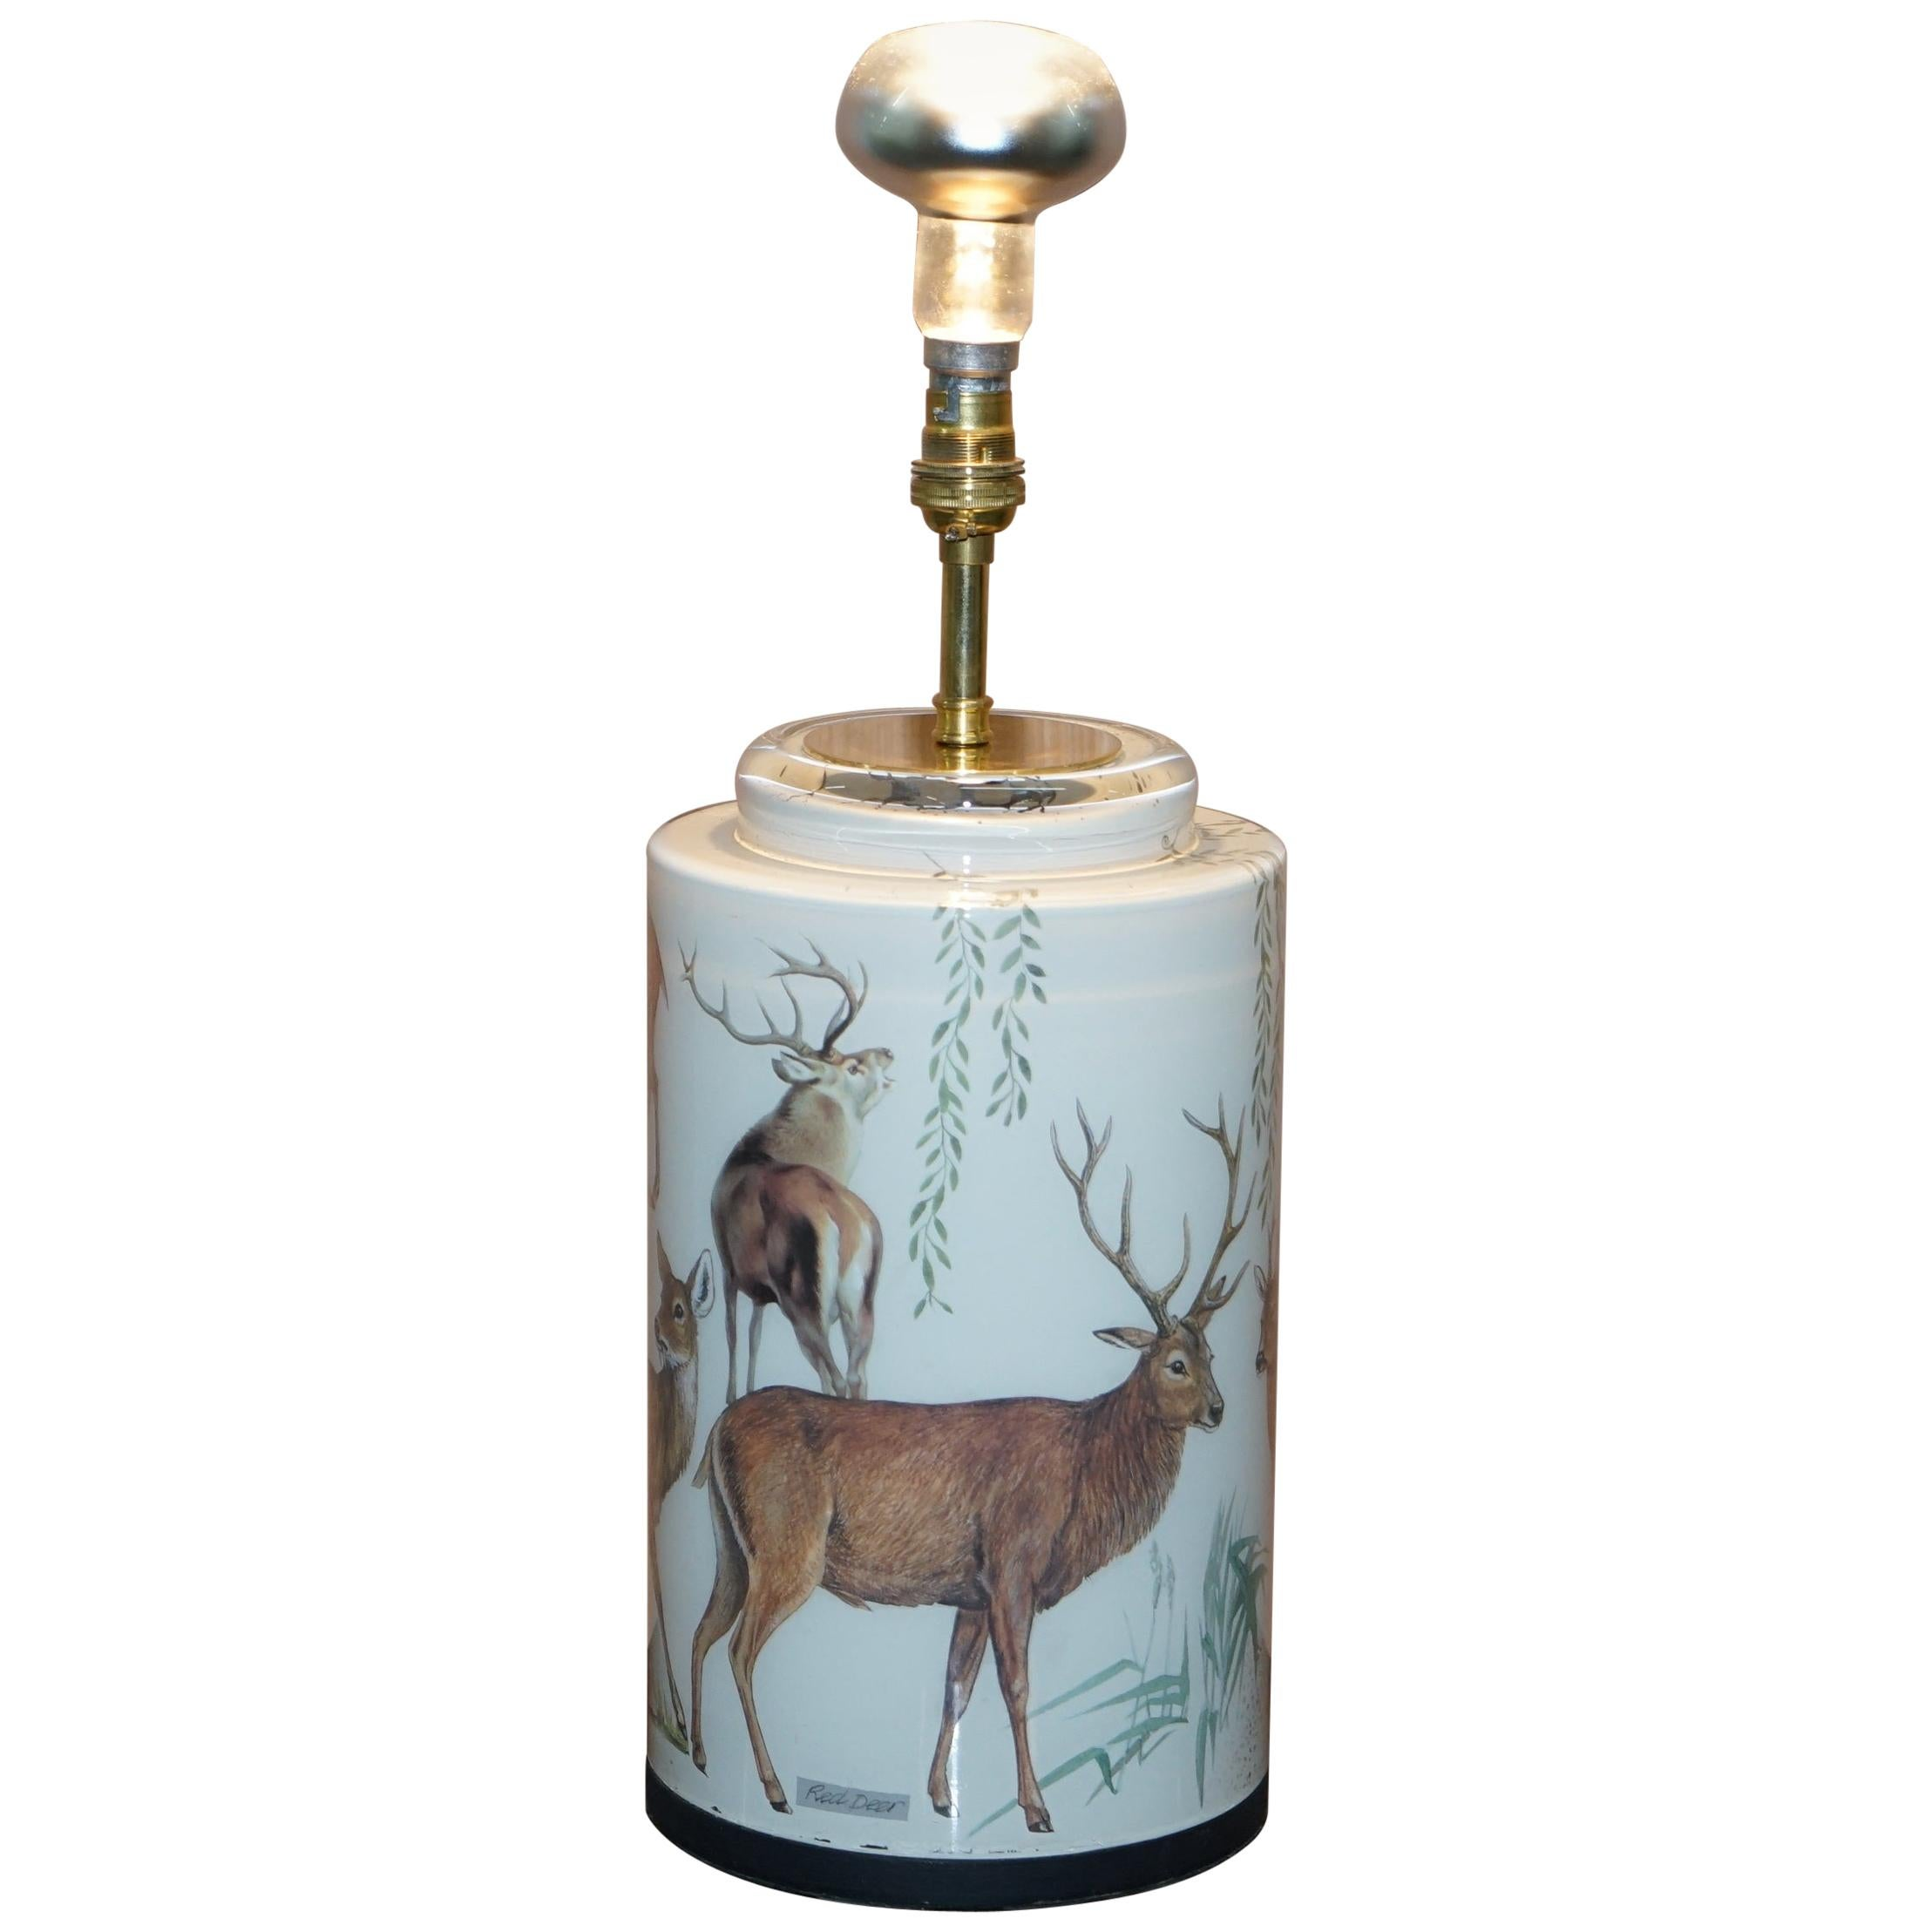 Very Rare Potichomania Studies Lamp Illustrated by Diana Mayo of Deer Stages Etc